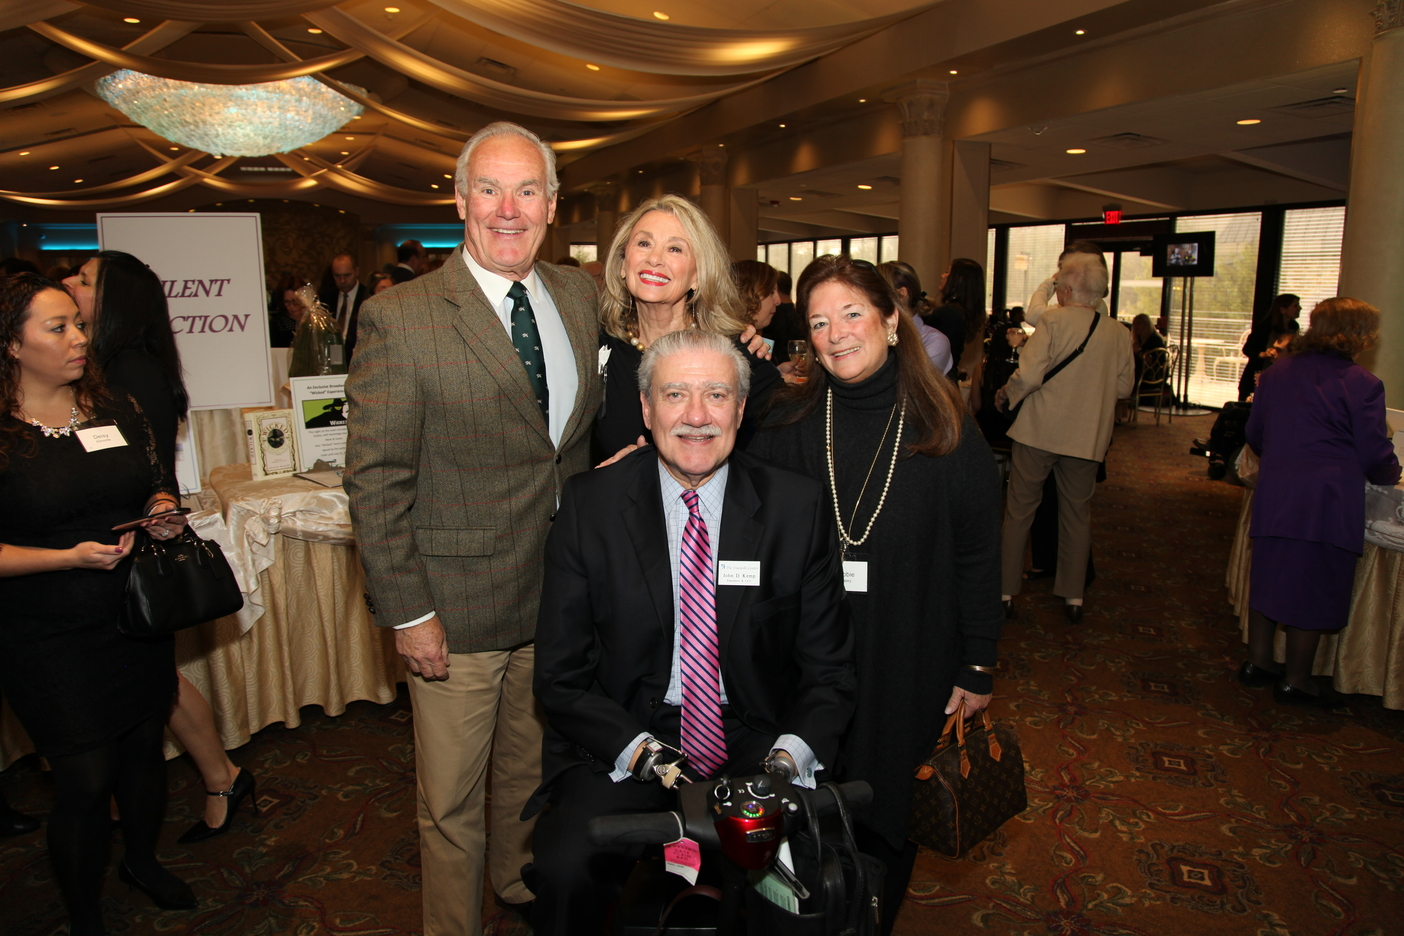 Viscardi President & CEO, John D. Kemp and his wife, Sam – a member of the Reach for a Star Luncheon Committee, with Bob and Deb Hussey during the event's cocktail reception.